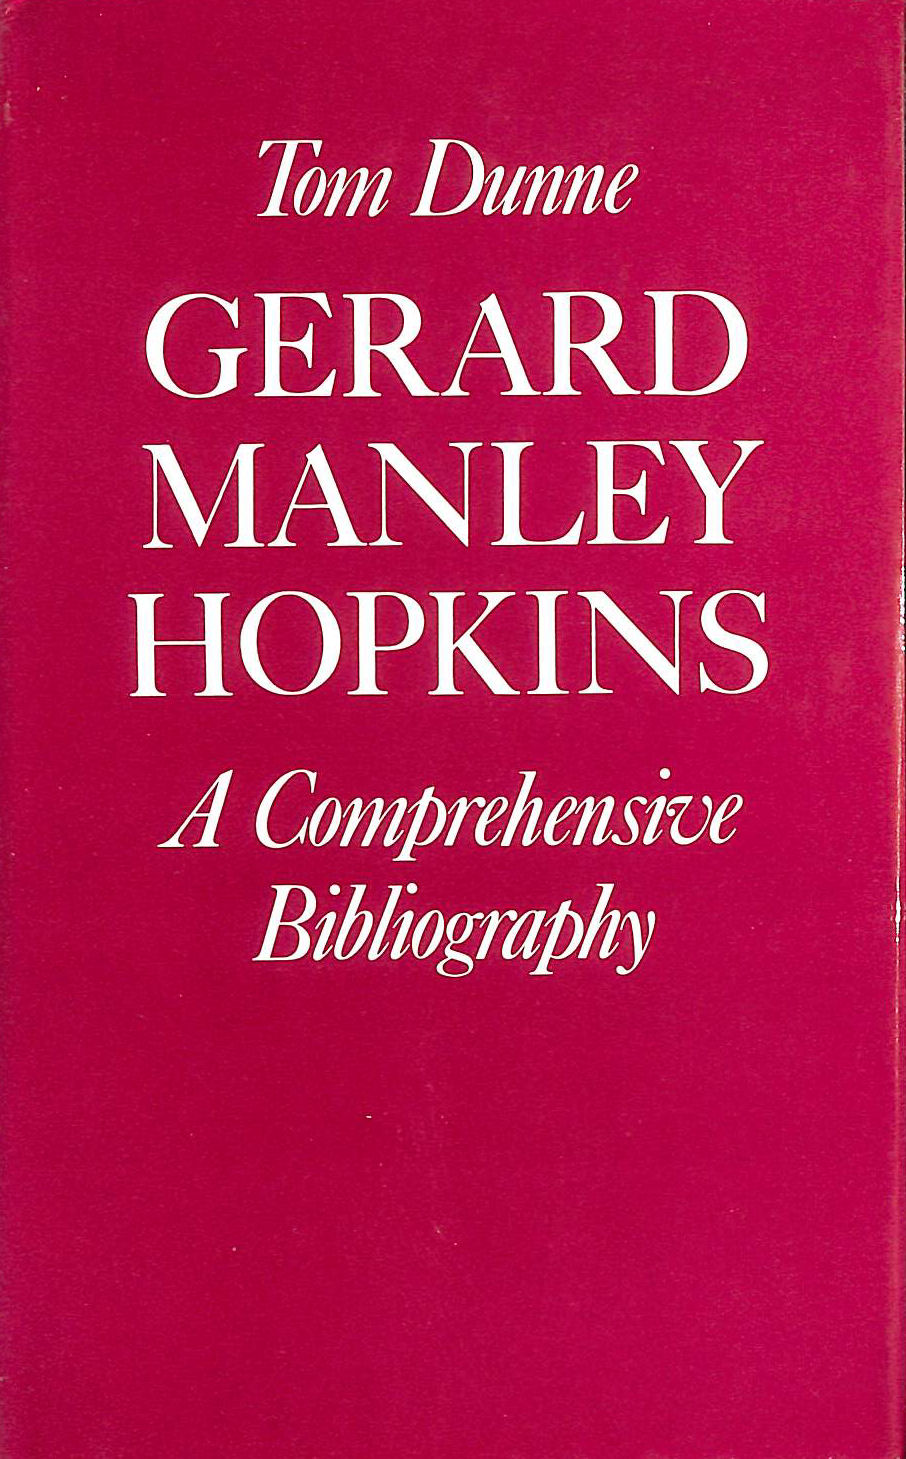 Image for Gerard Manley Hopkins: A Comprehensive Bibliography